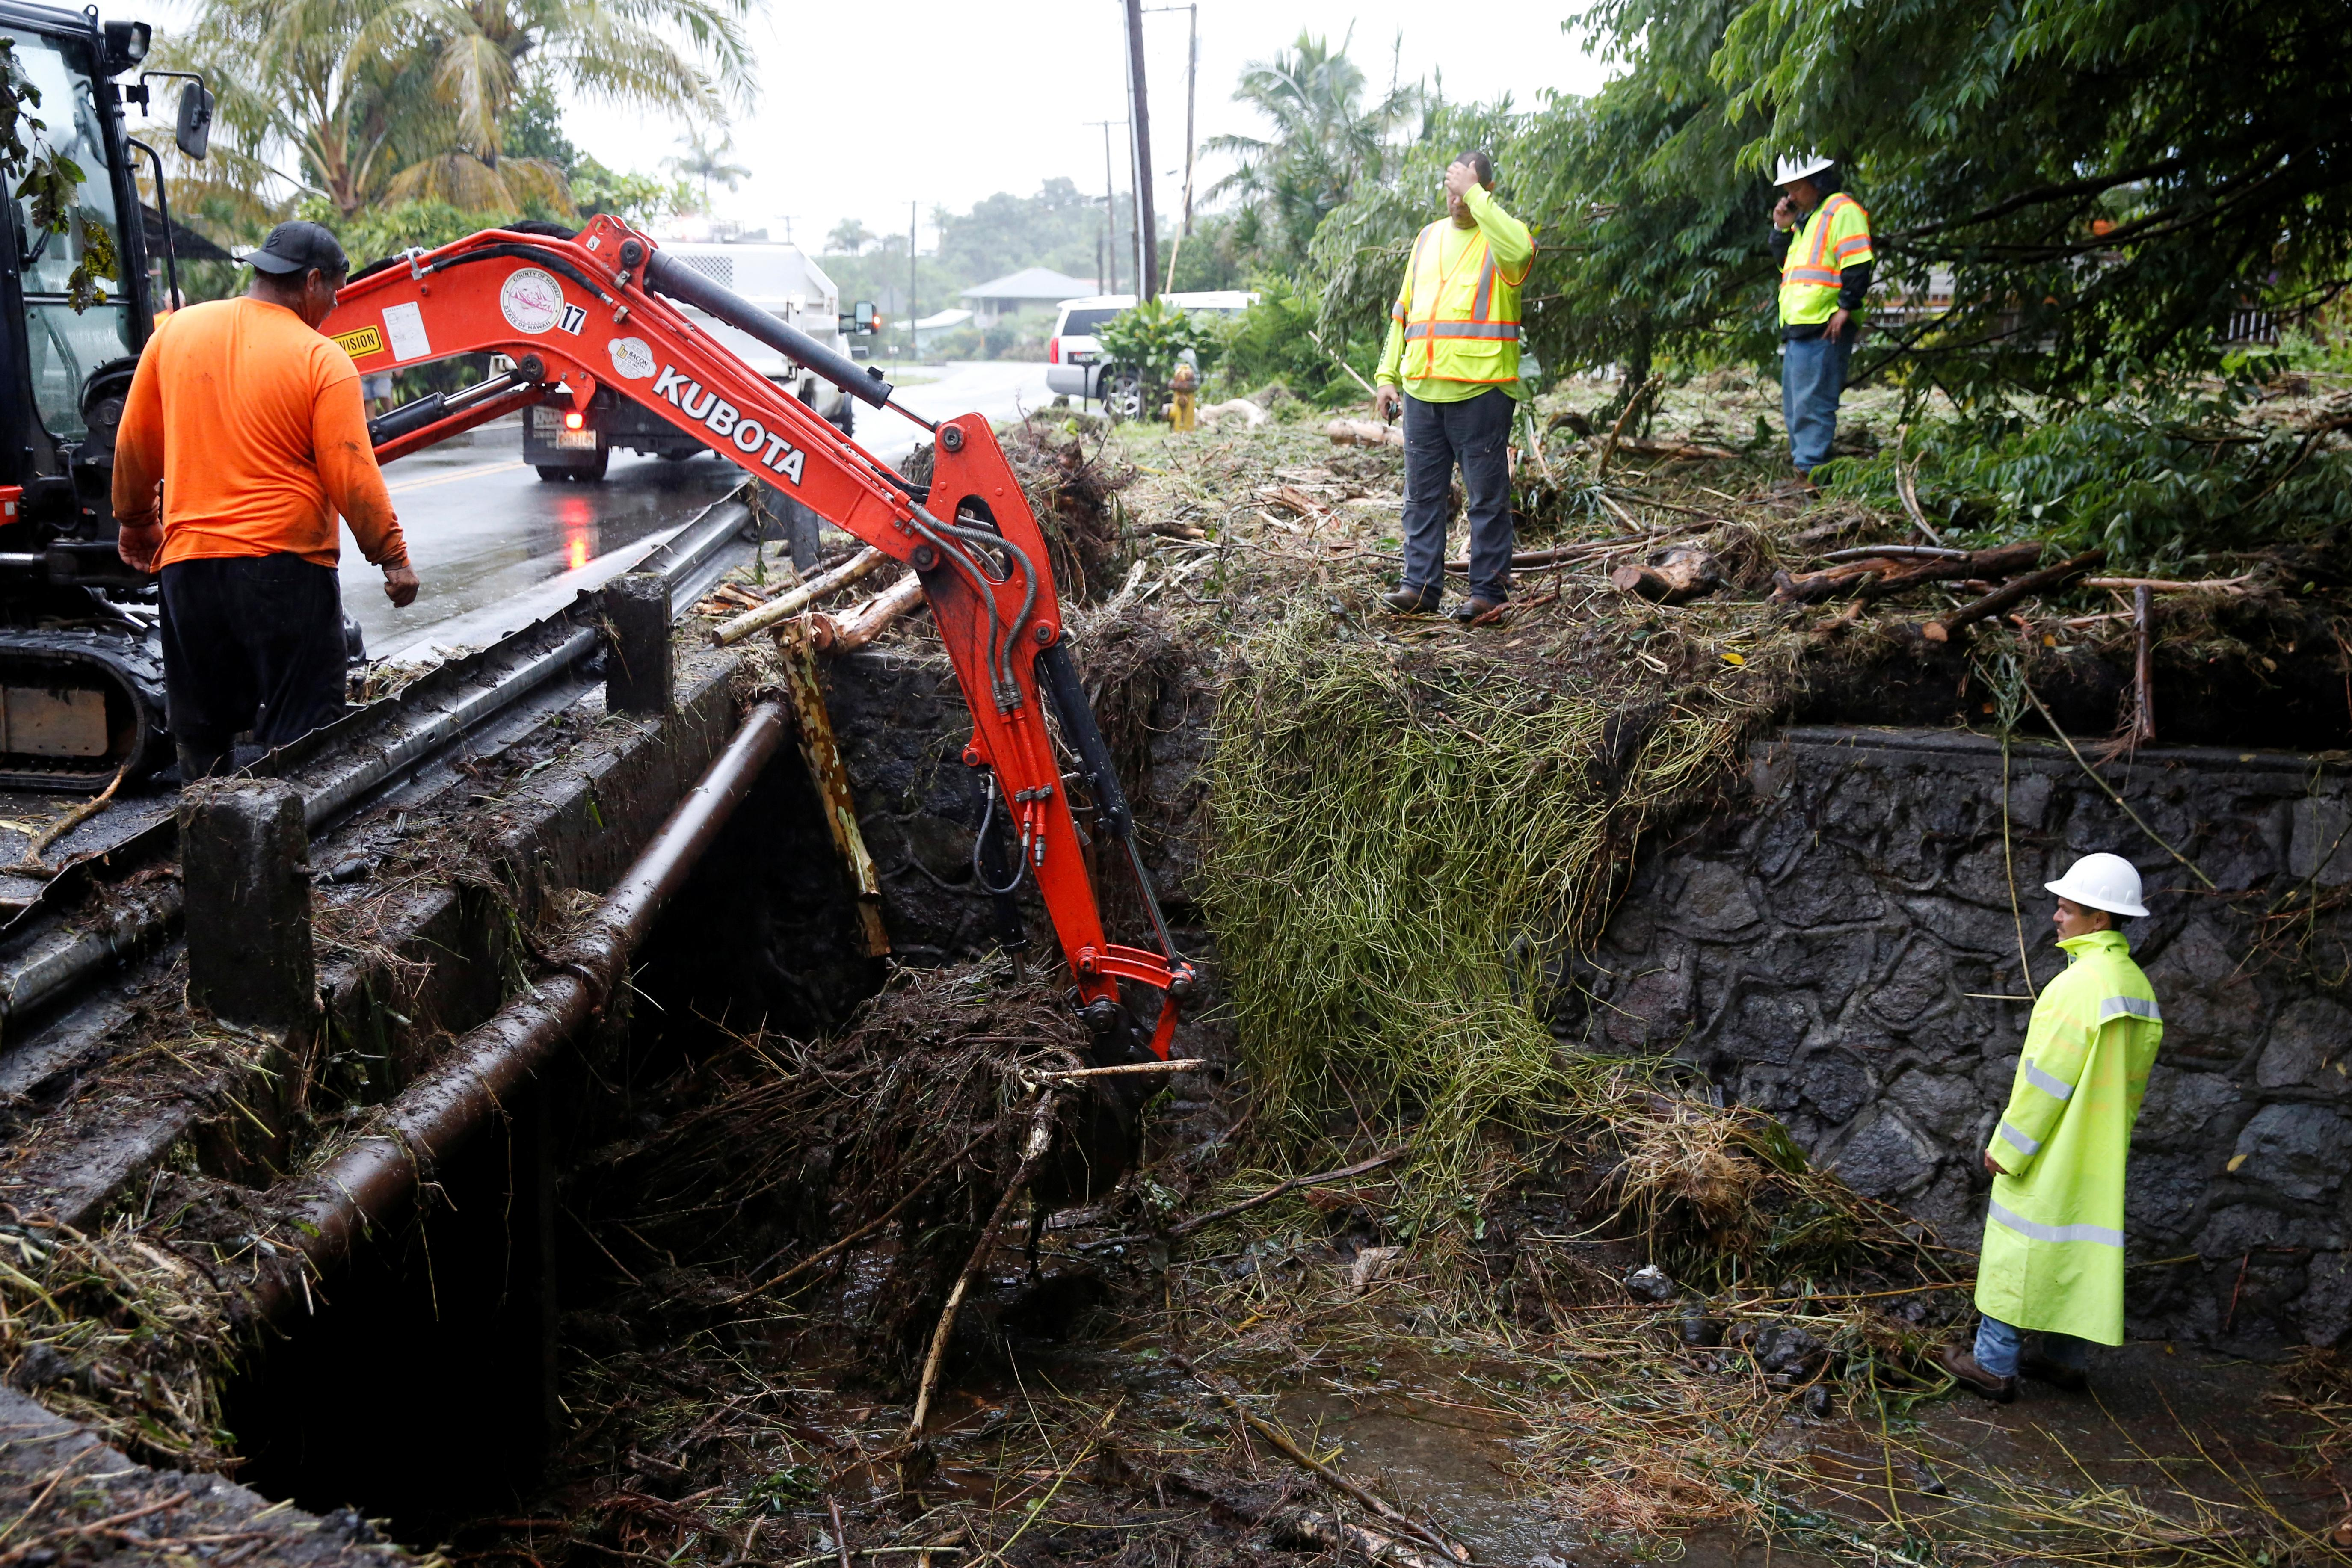 <p>Hawaii County employees clean up debris from flooding caused by Hurricane Lane in Hilo, Hawaii, Aug. 25, 2018. (Photo: Terray Sylvester/Reuters) </p>